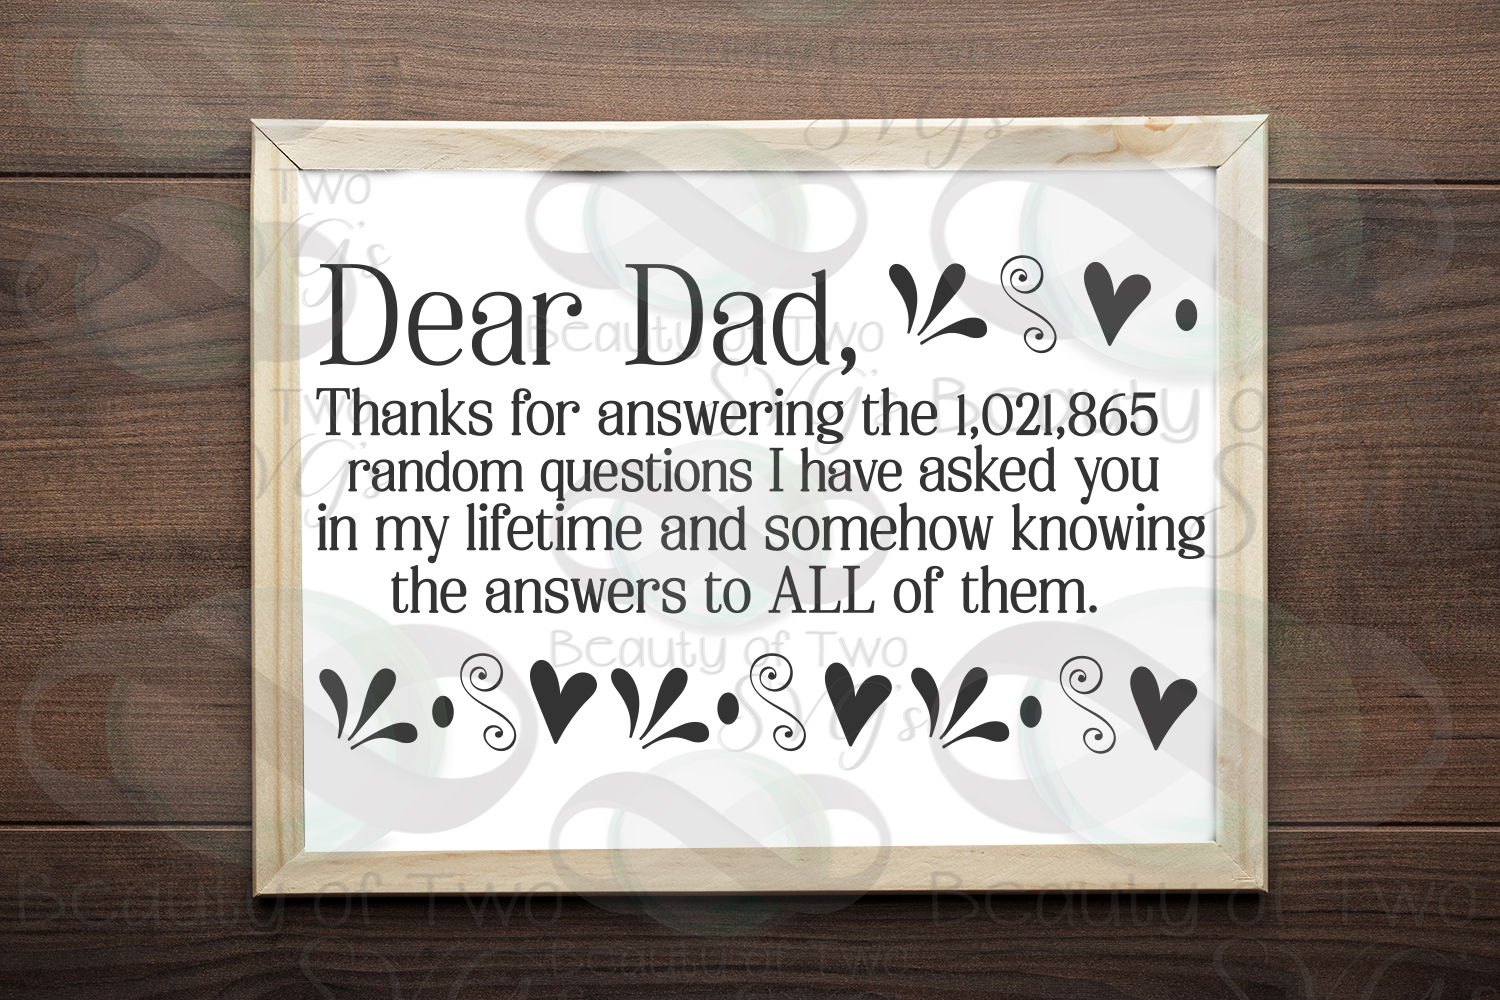 Fathers Day svg & png, Dear Dad svg, Dad love svg, example image 1